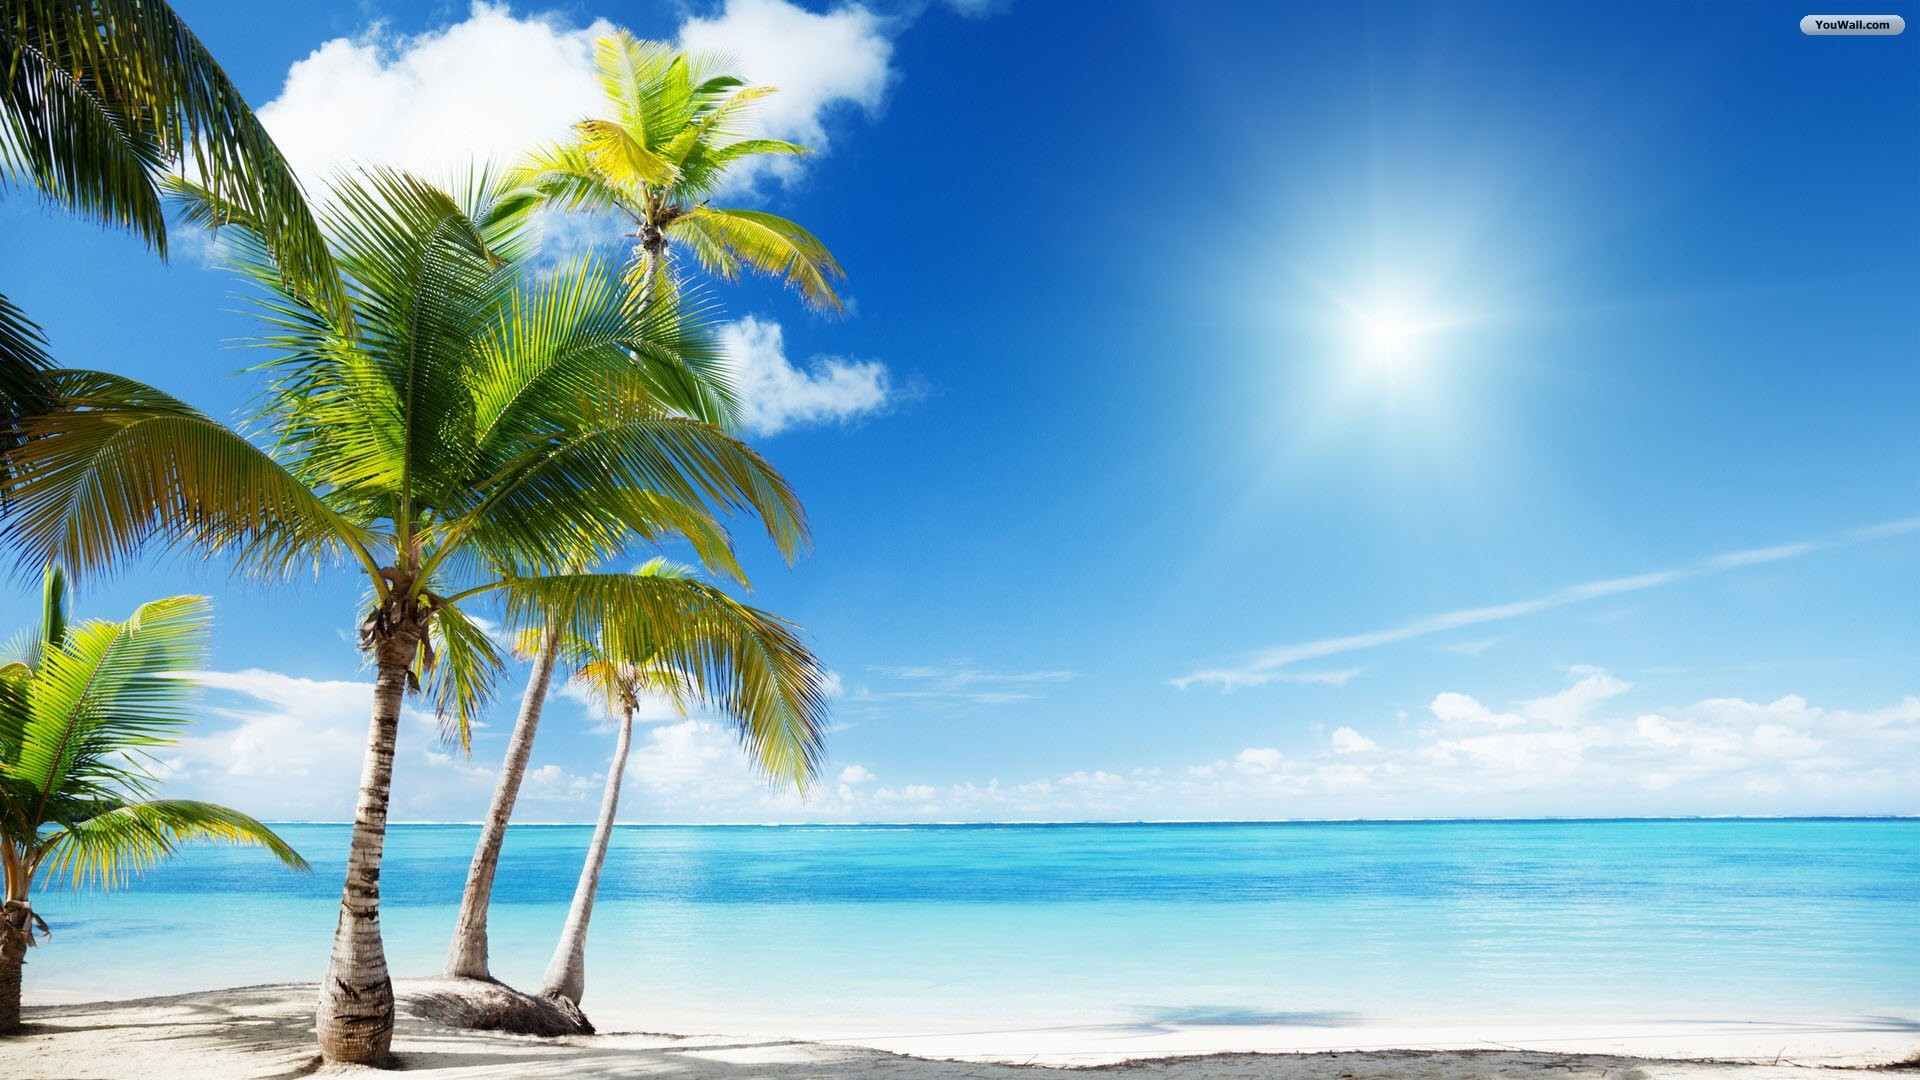 tropical beach scenes wallpaper 49 images